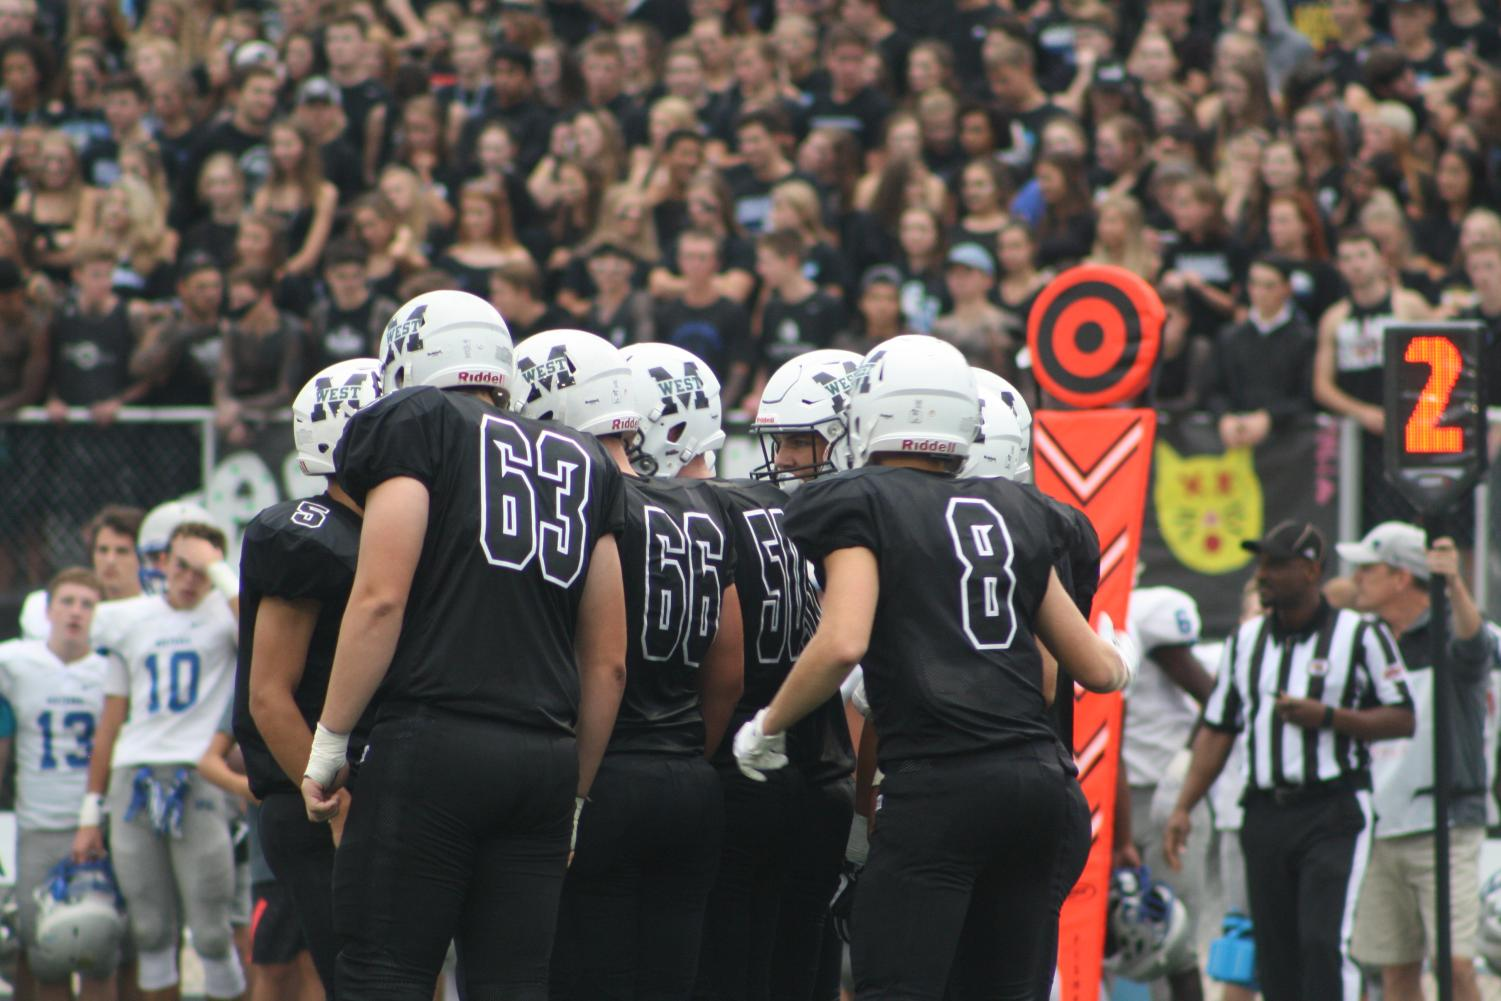 The Wildcats huddle preparing for their next play.